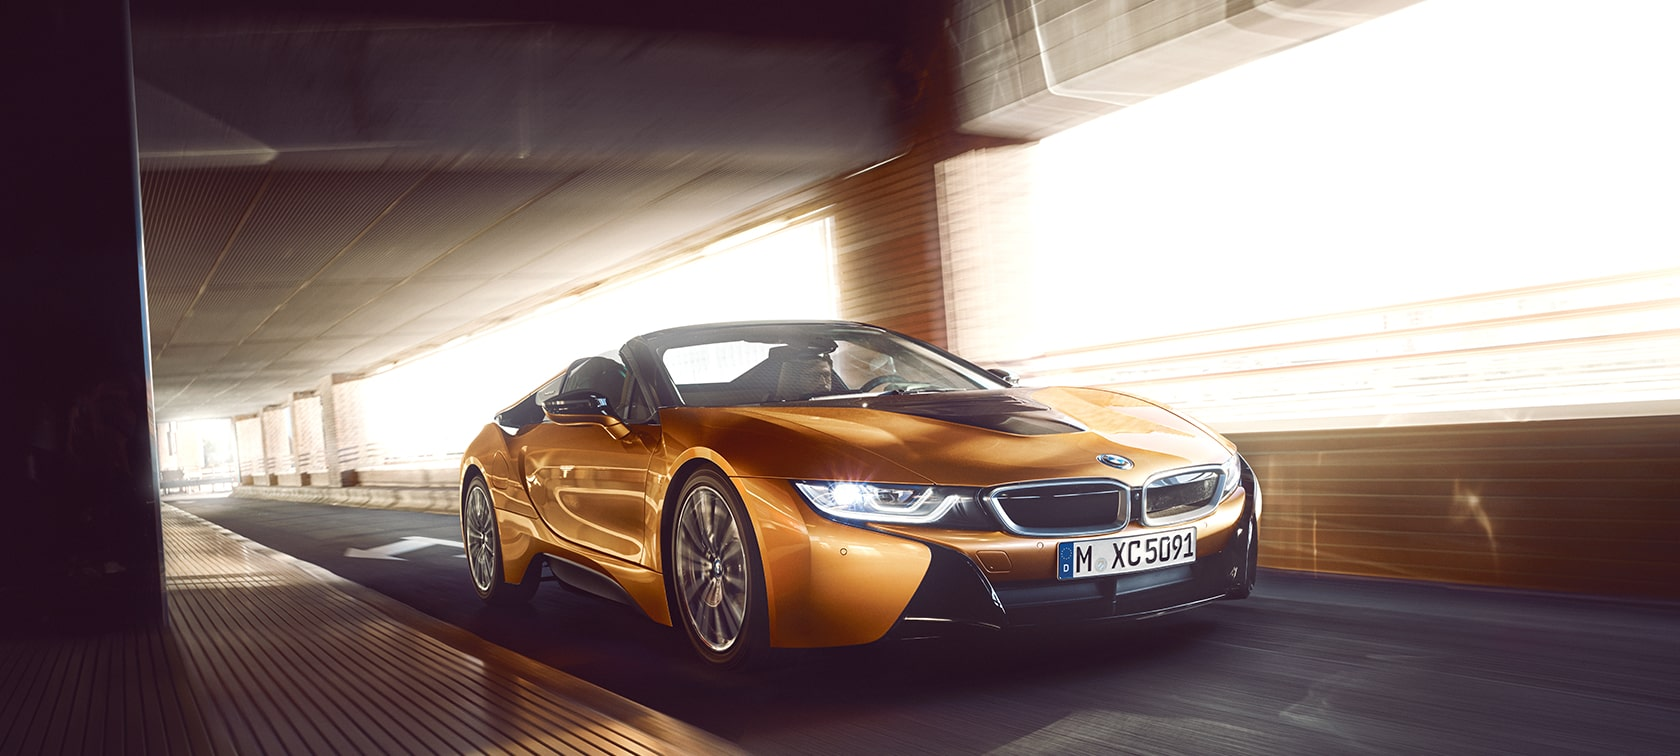 Bmw I8 Roadster Price List Brochure